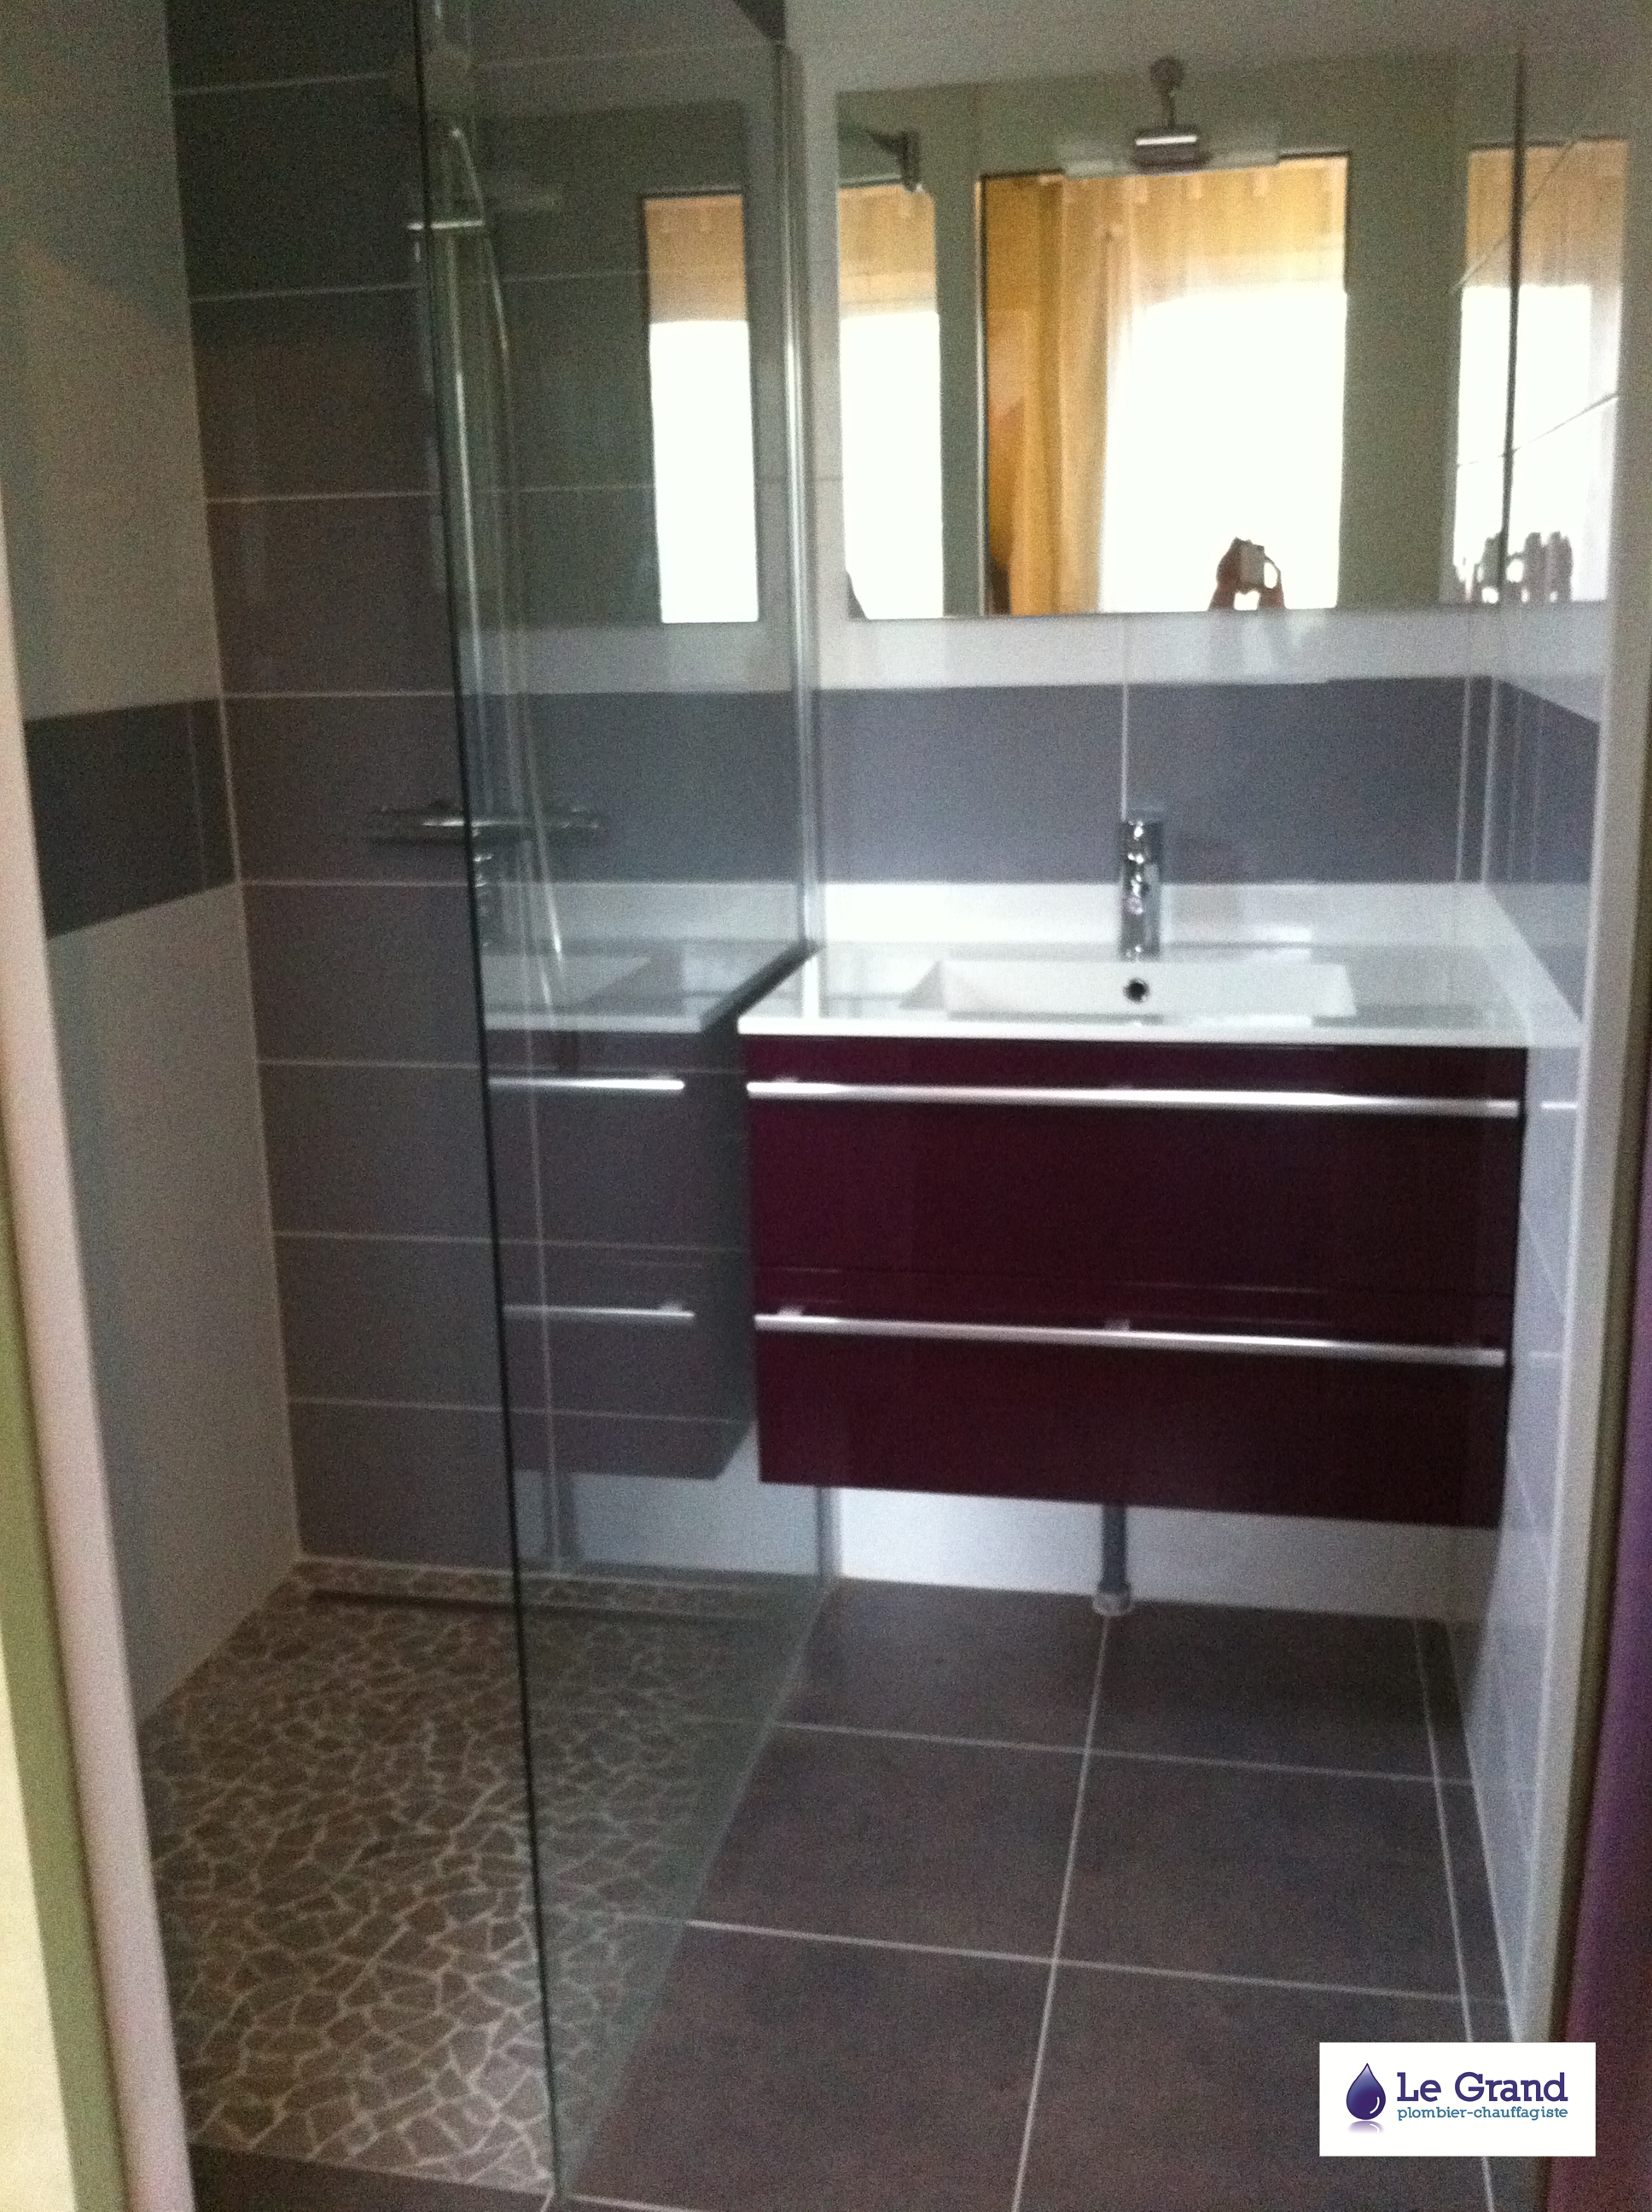 301 moved permanently for Salle bain avec douche italienne